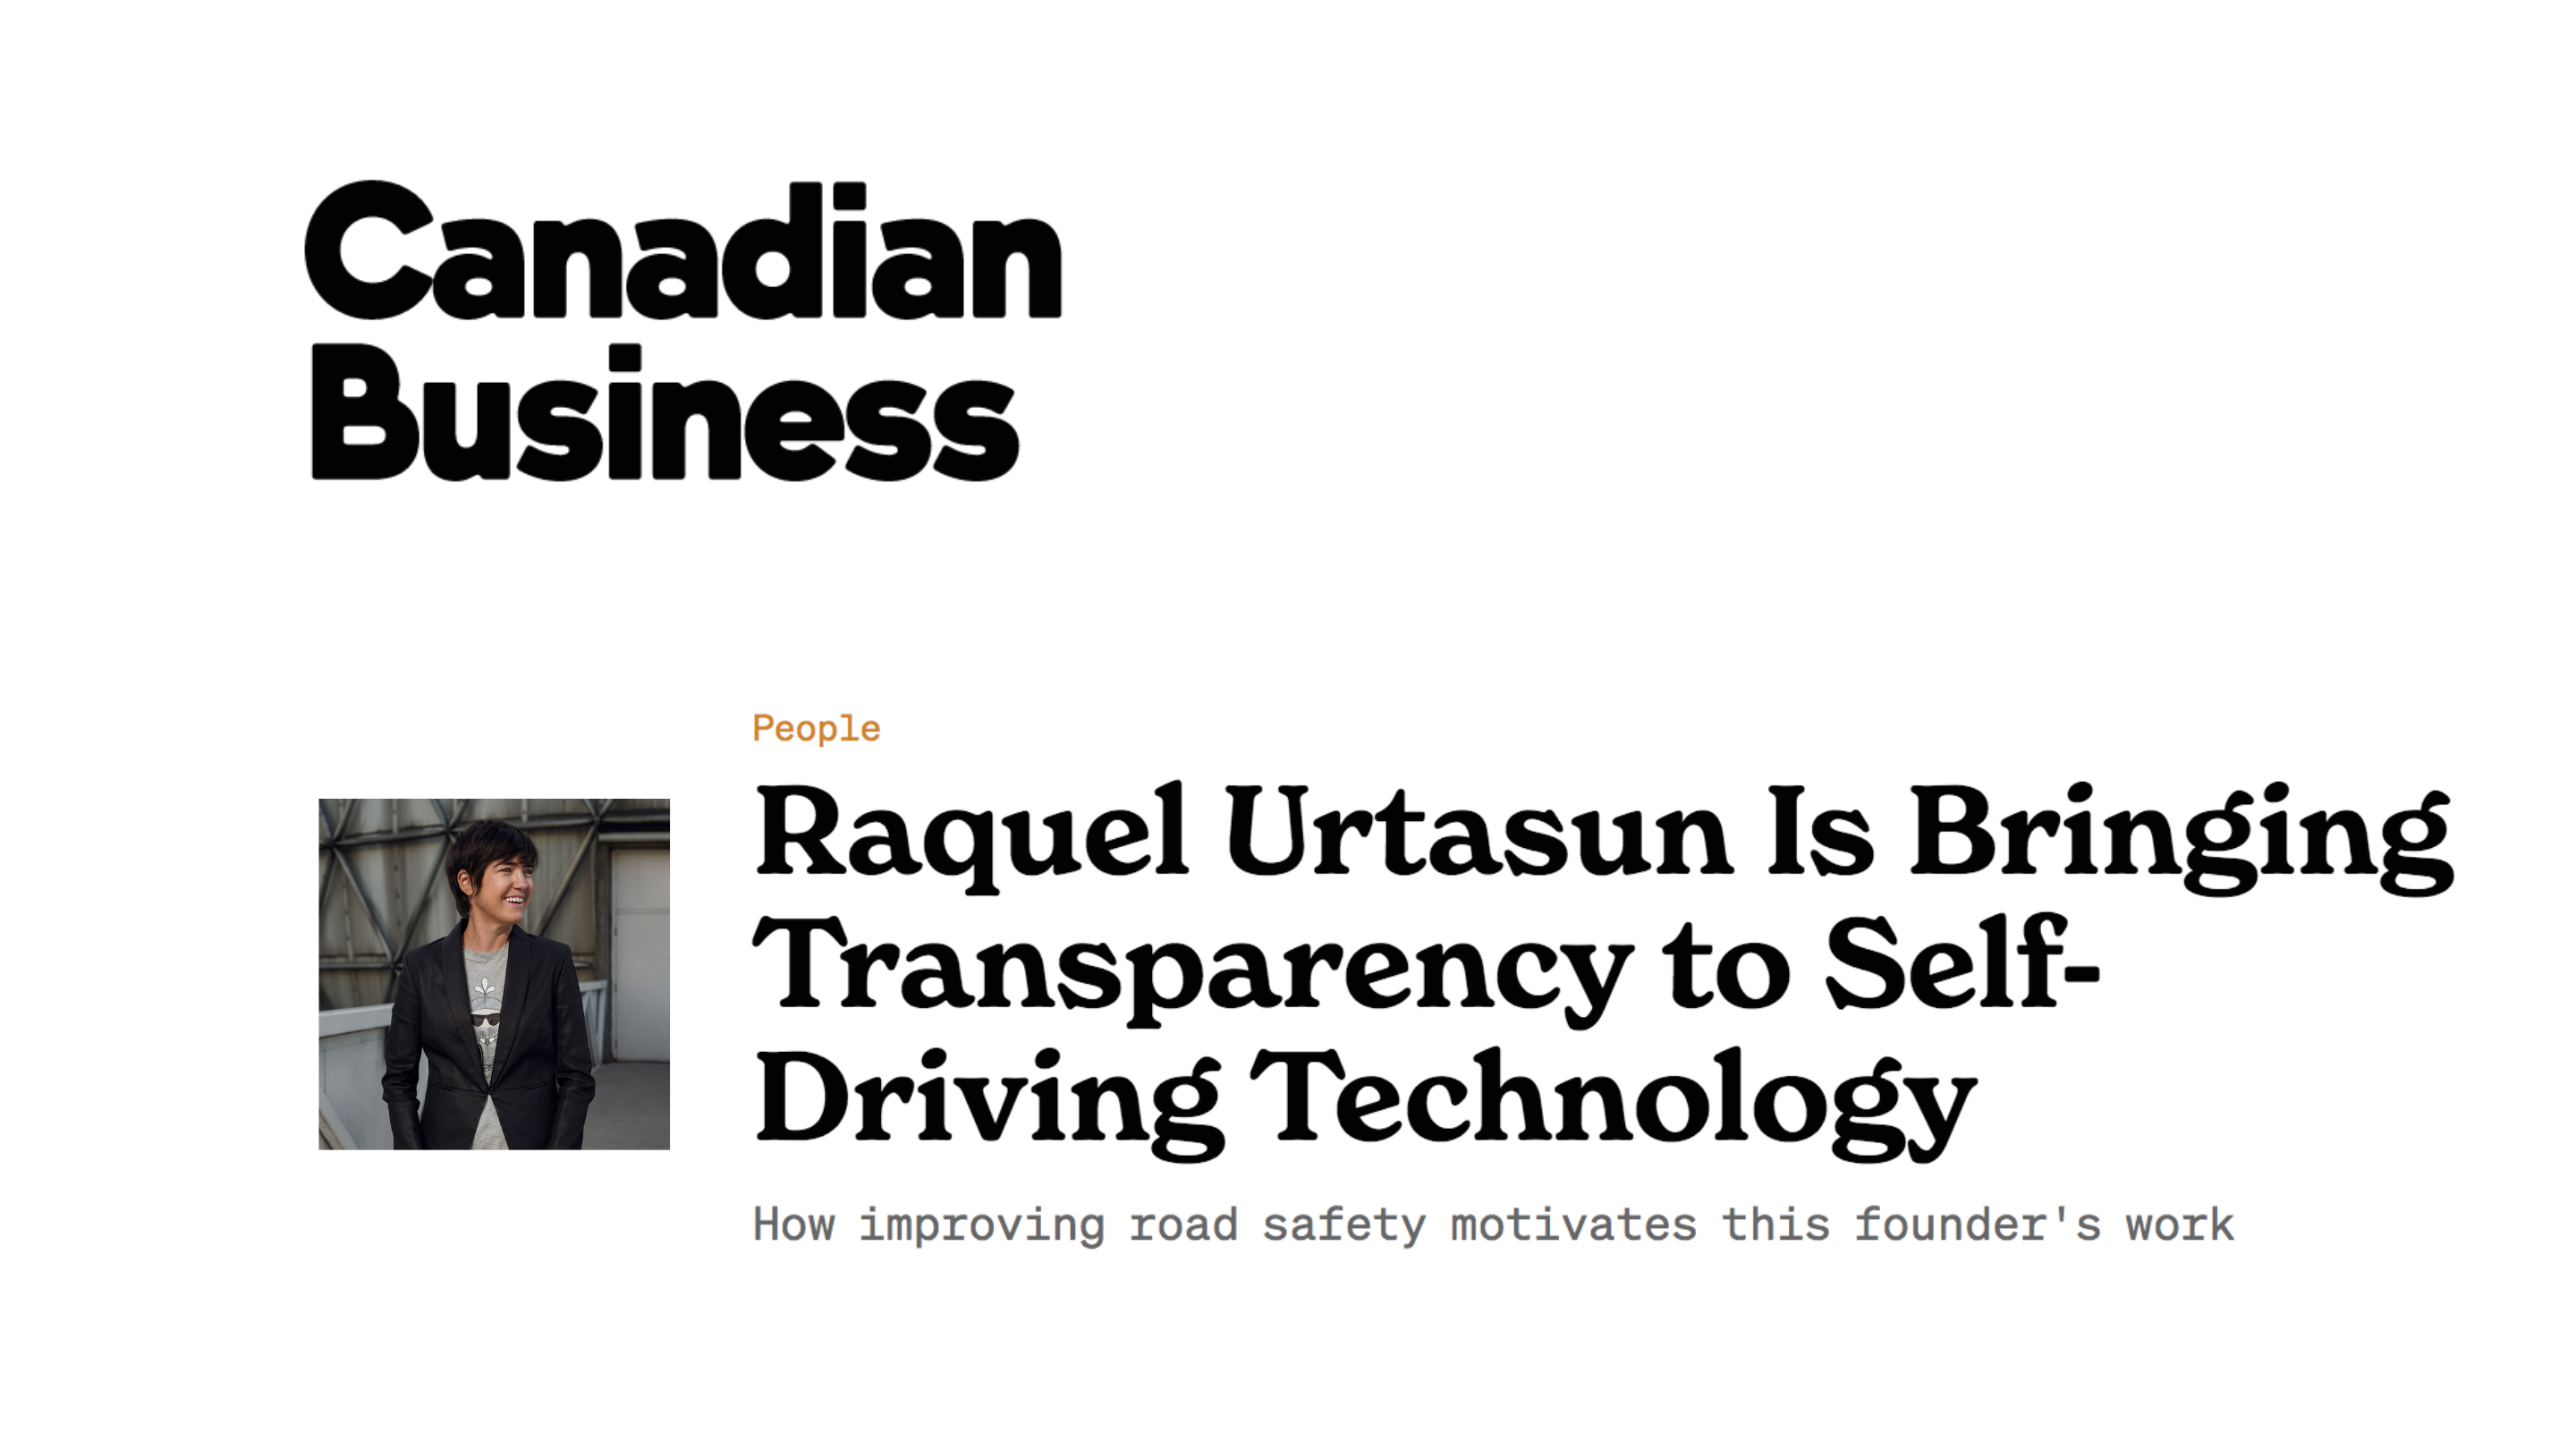 Canadian Business: Raquel Urtasun is Bringing Transparency to Self-Driving Technology